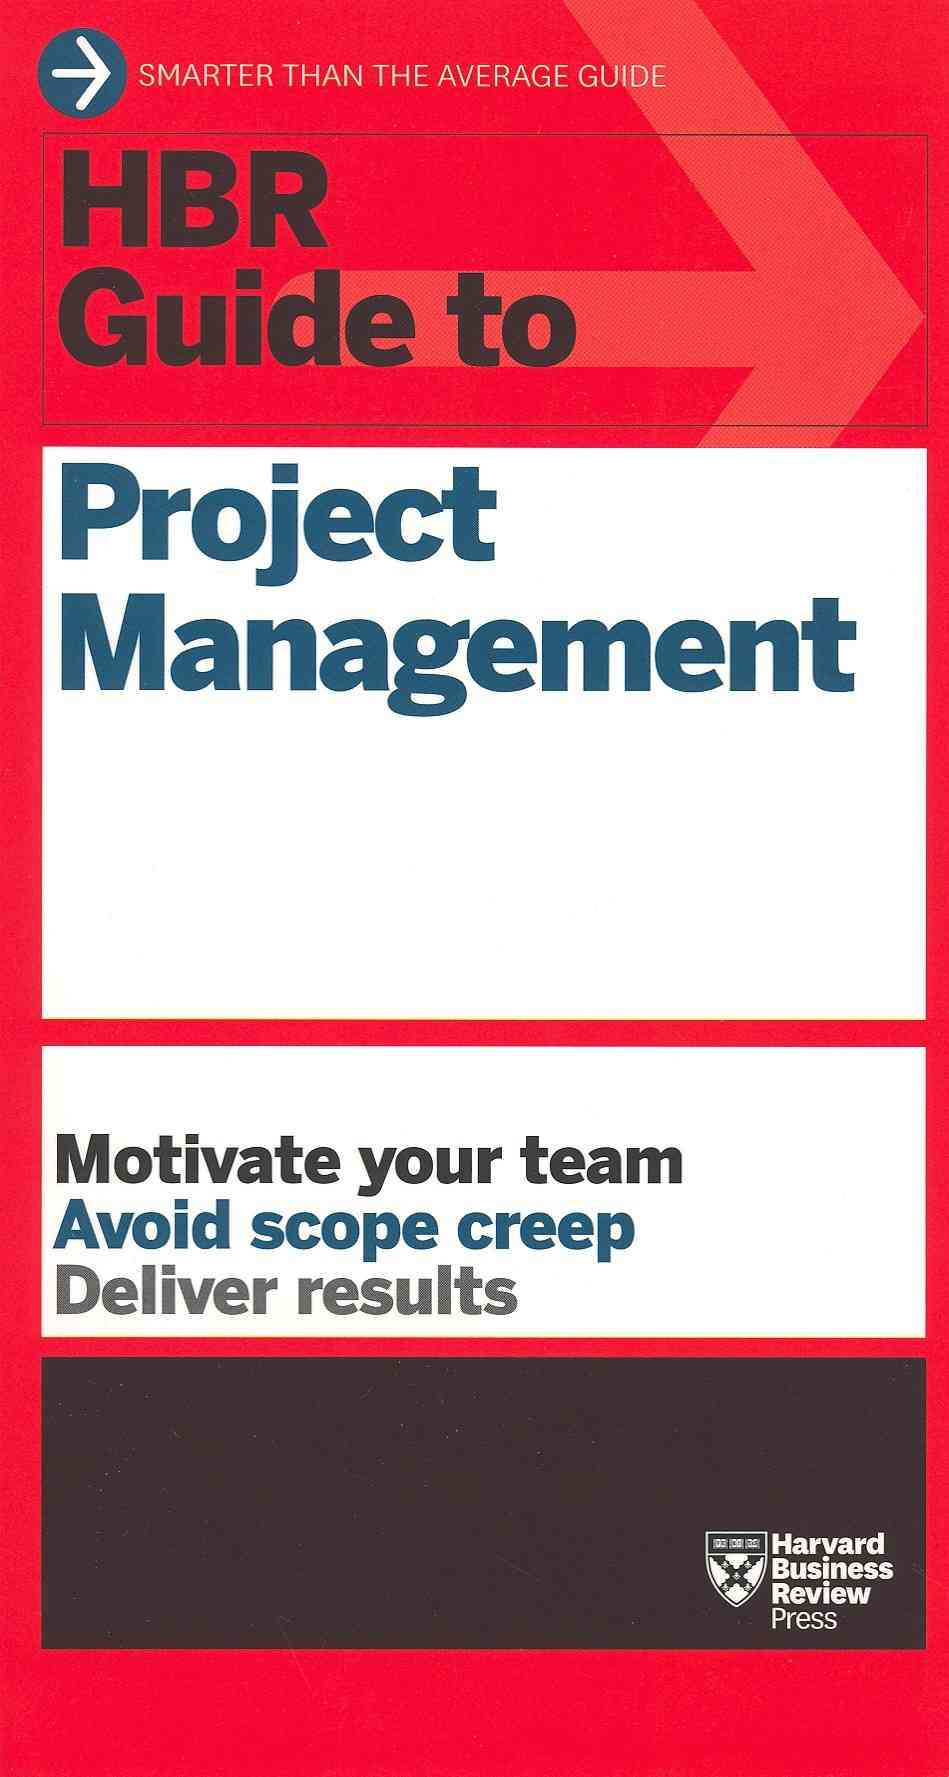 HBR Guide to Project Management By Harvard Business Review (COR)